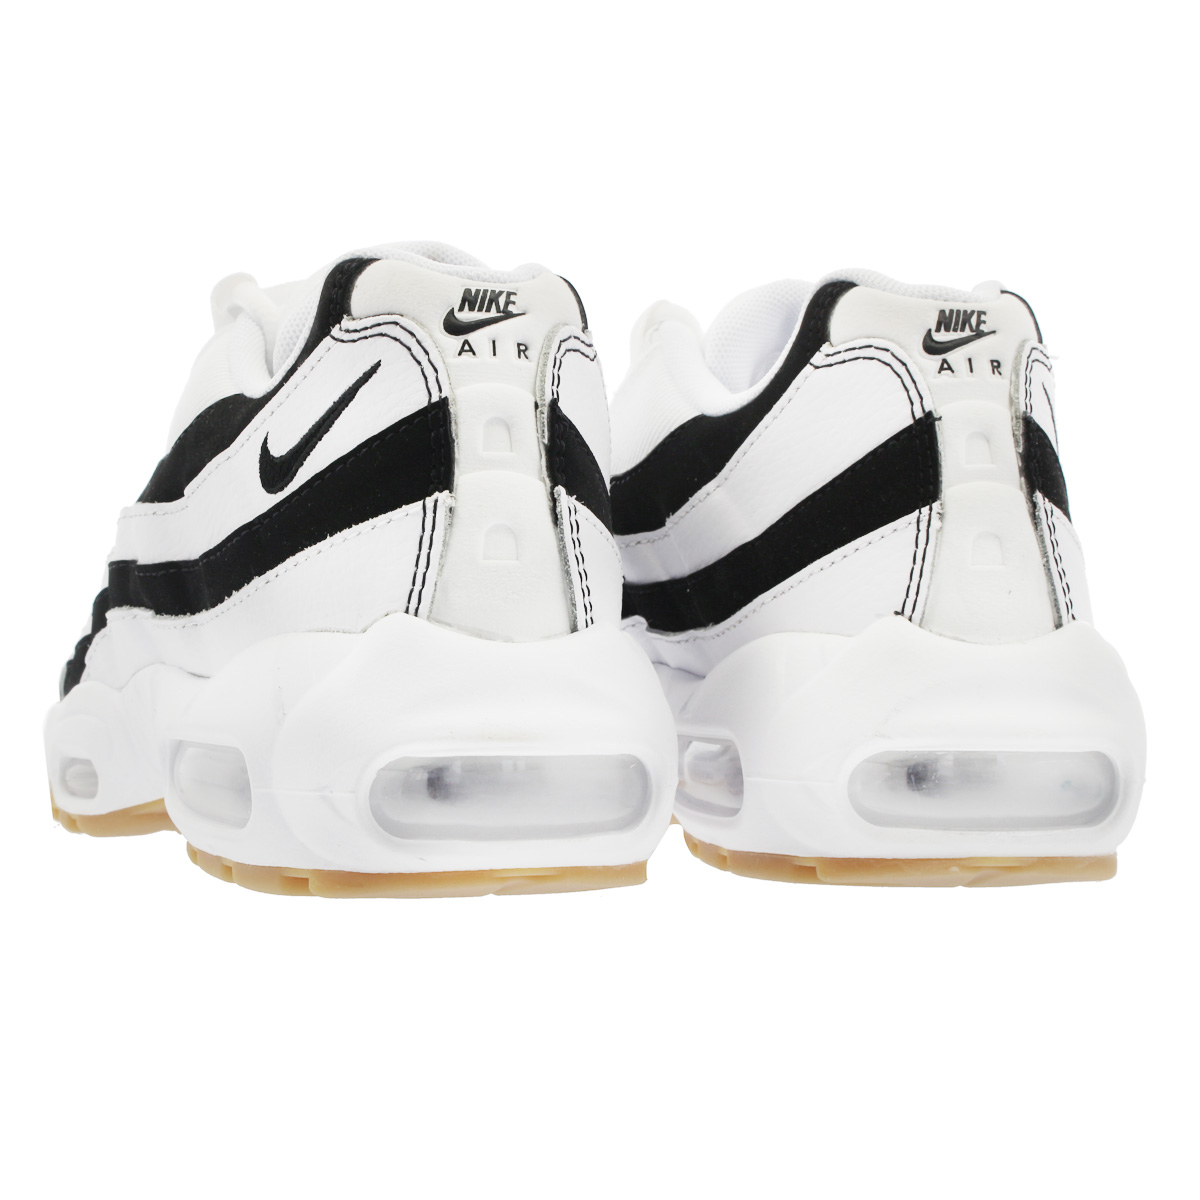 712e3a443c5 NIKE WMNS AIR MAX 95 Nike women Air Max 95 WHITE GUM LIGHT BROWN BLACK  307